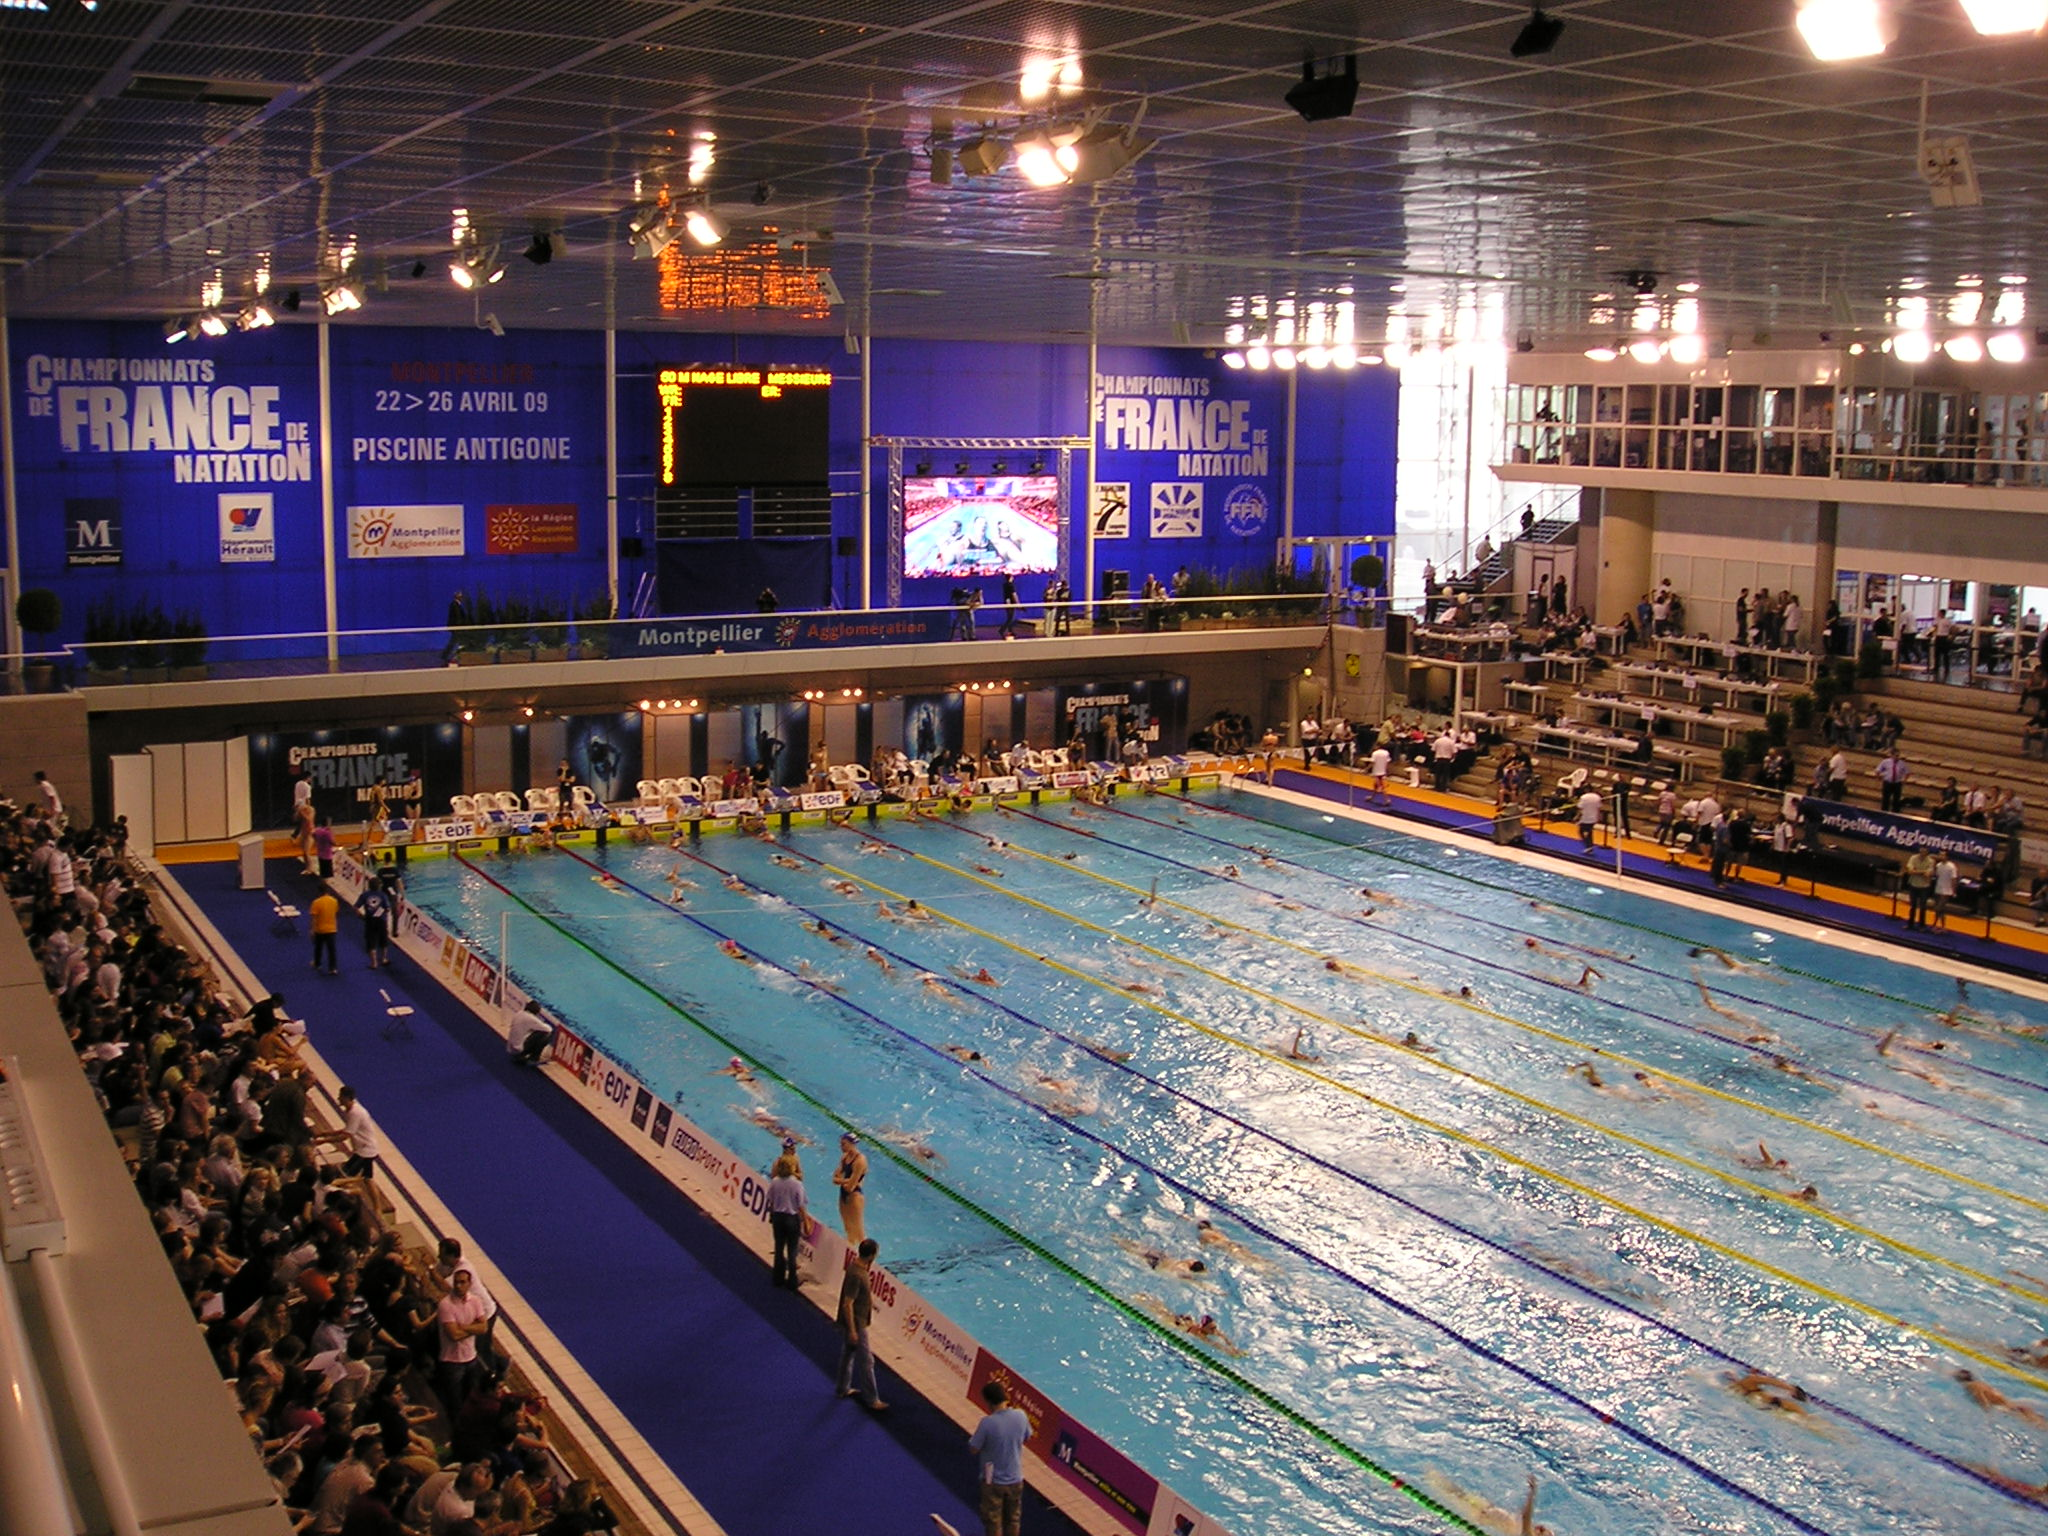 File mtp chp fr natation 25042009 antigone echauff jpg for Piscine montpellier